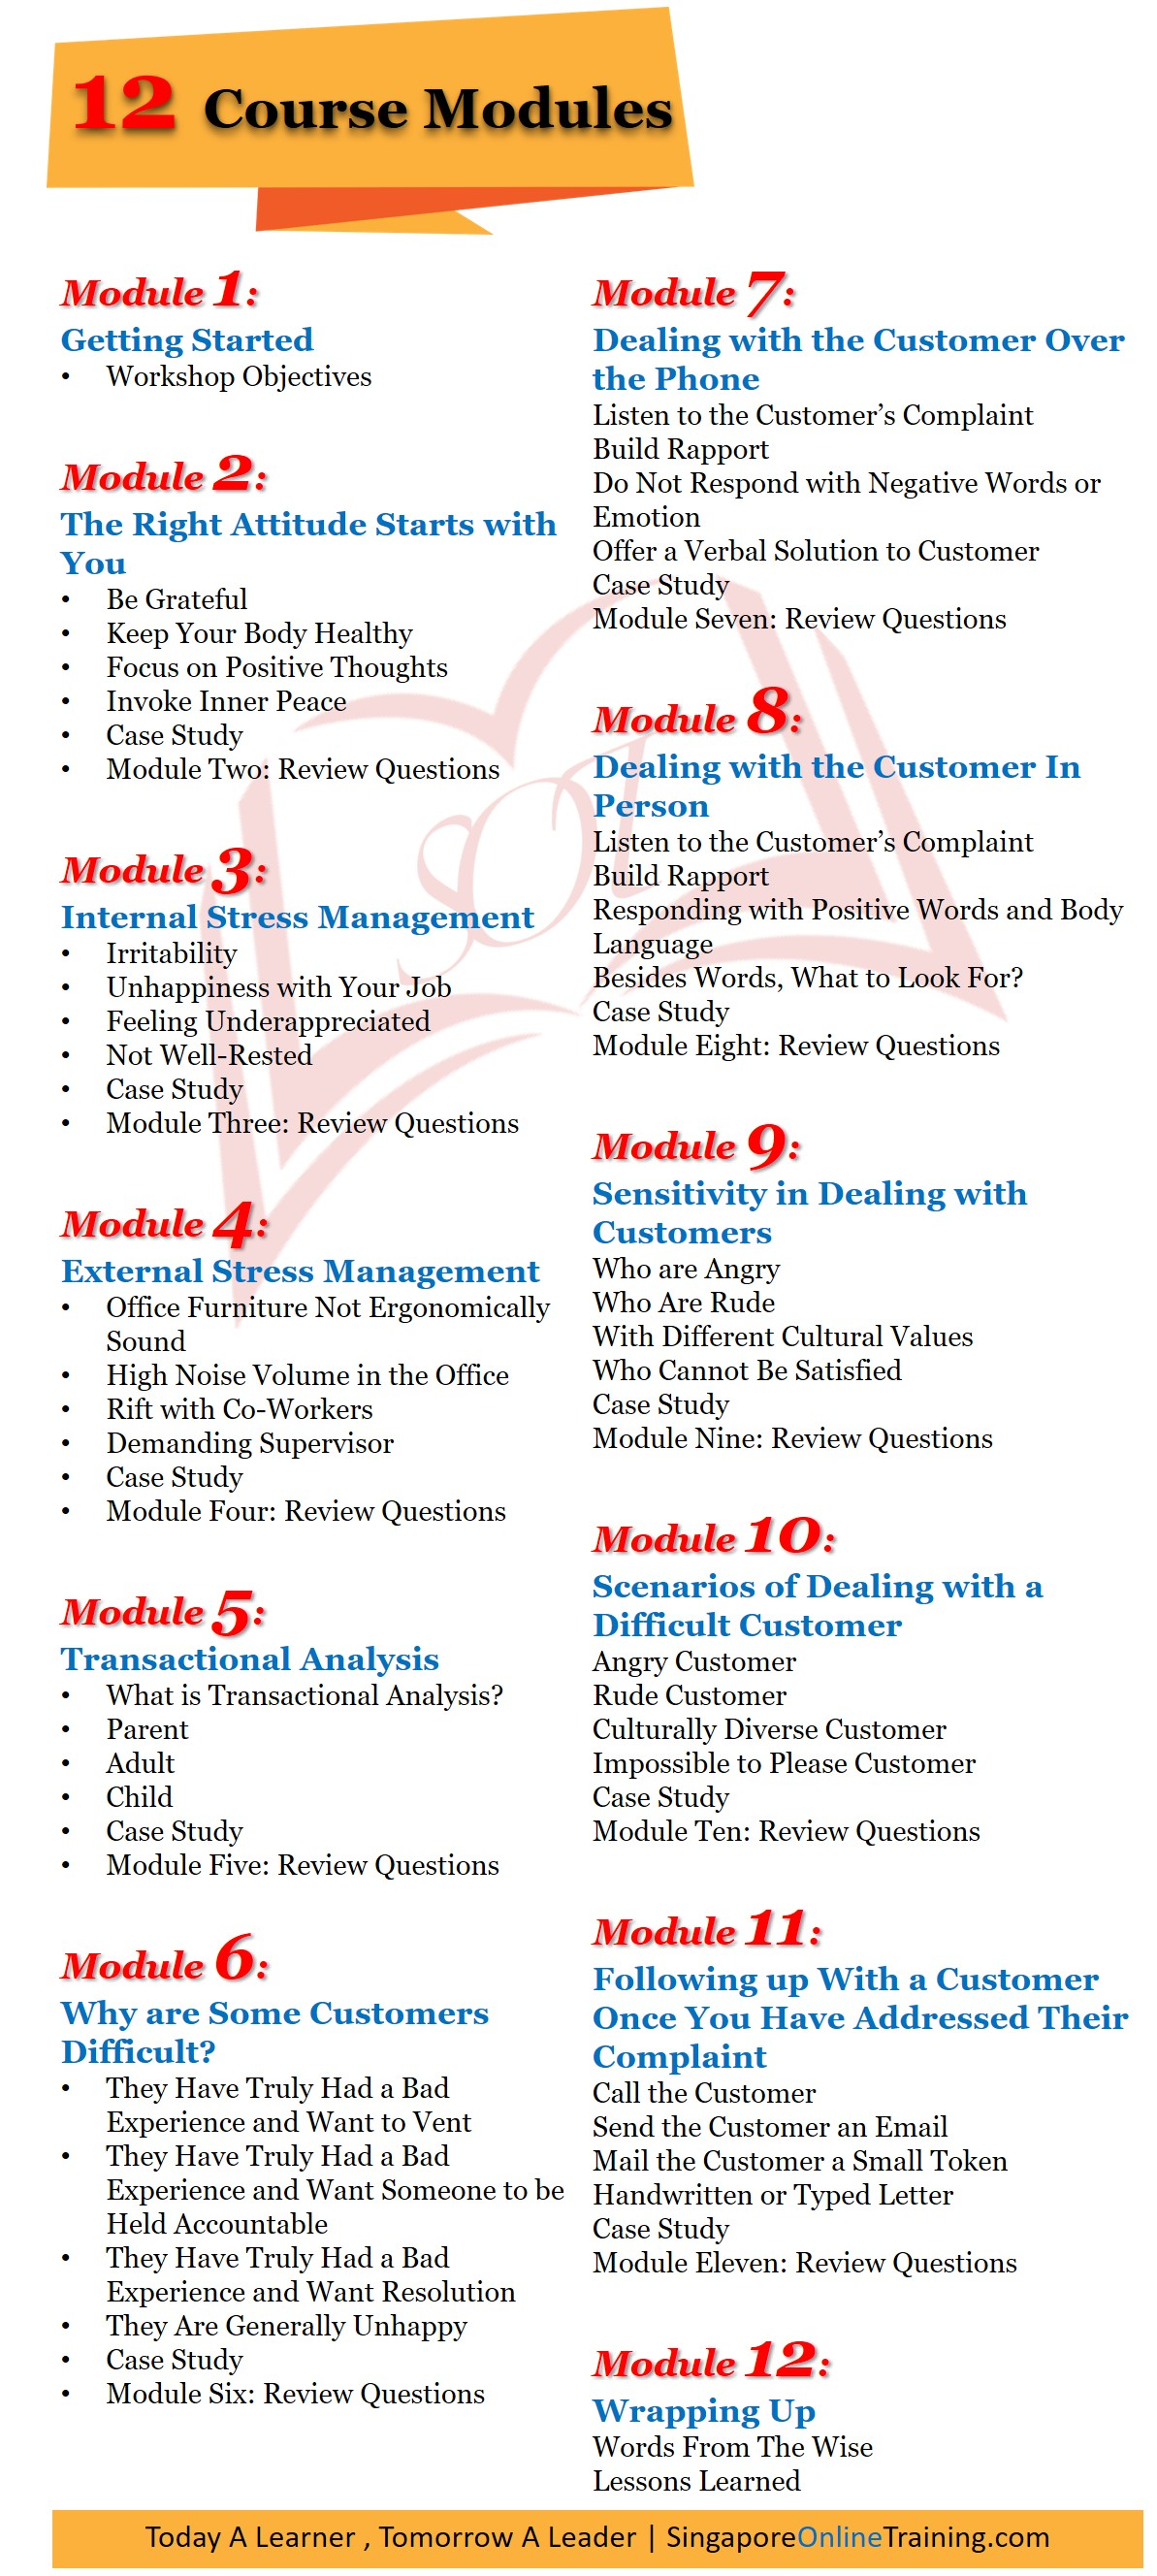 Handling a Difficult Customer Course Modules